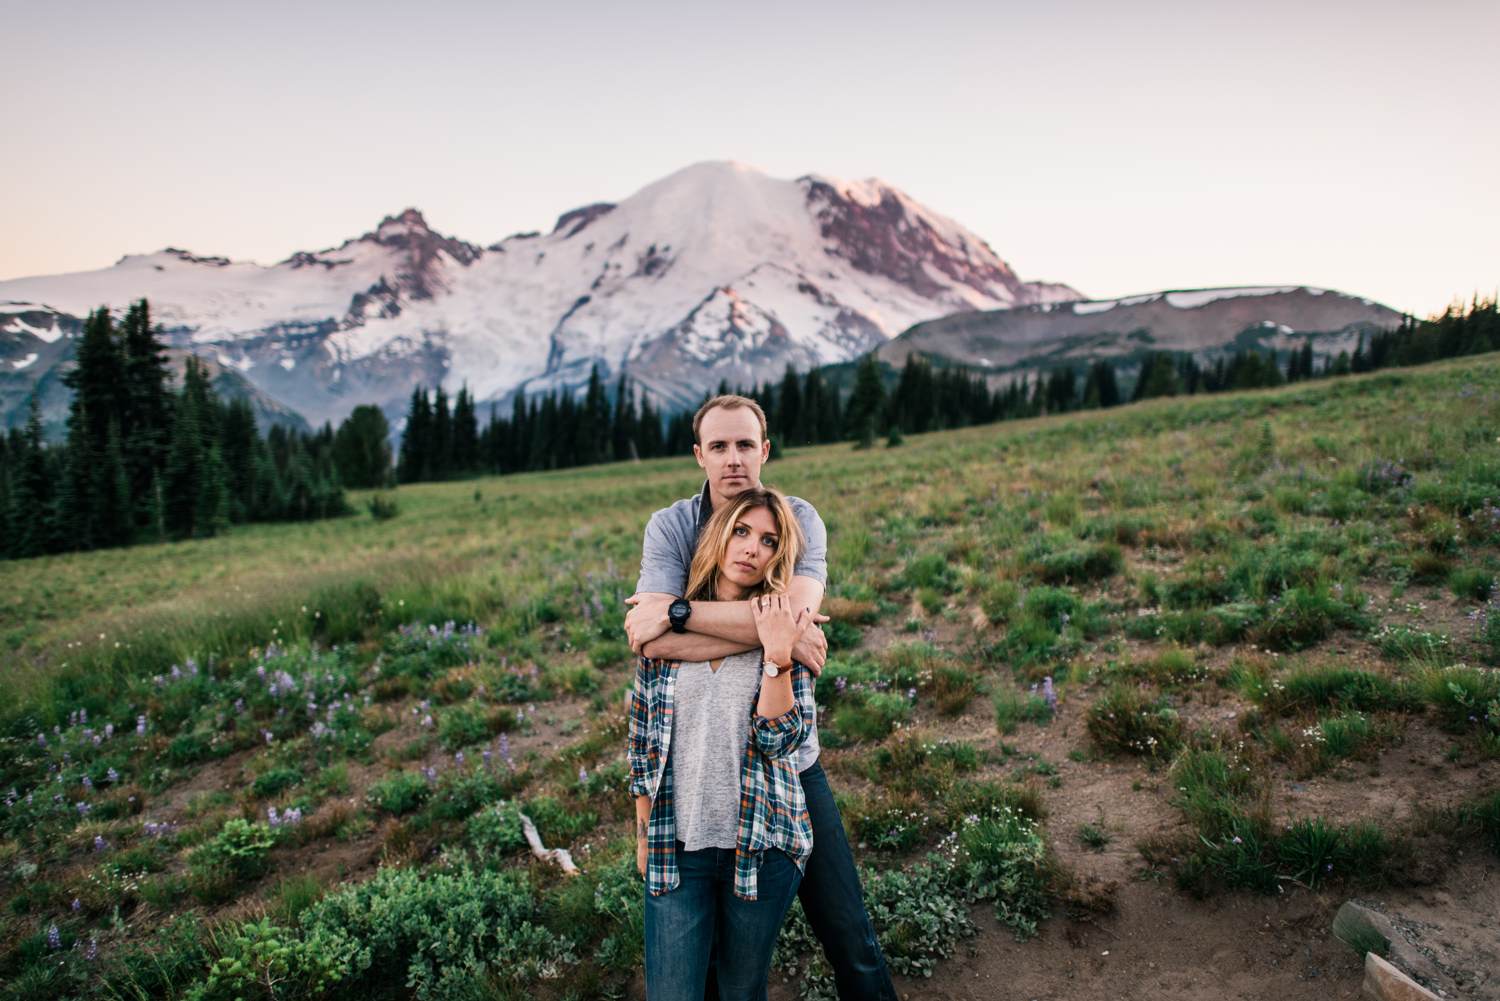 029-mt-rainier-adventure-engagement-session-seattle-film-photographer-ryan-flynn.jpg